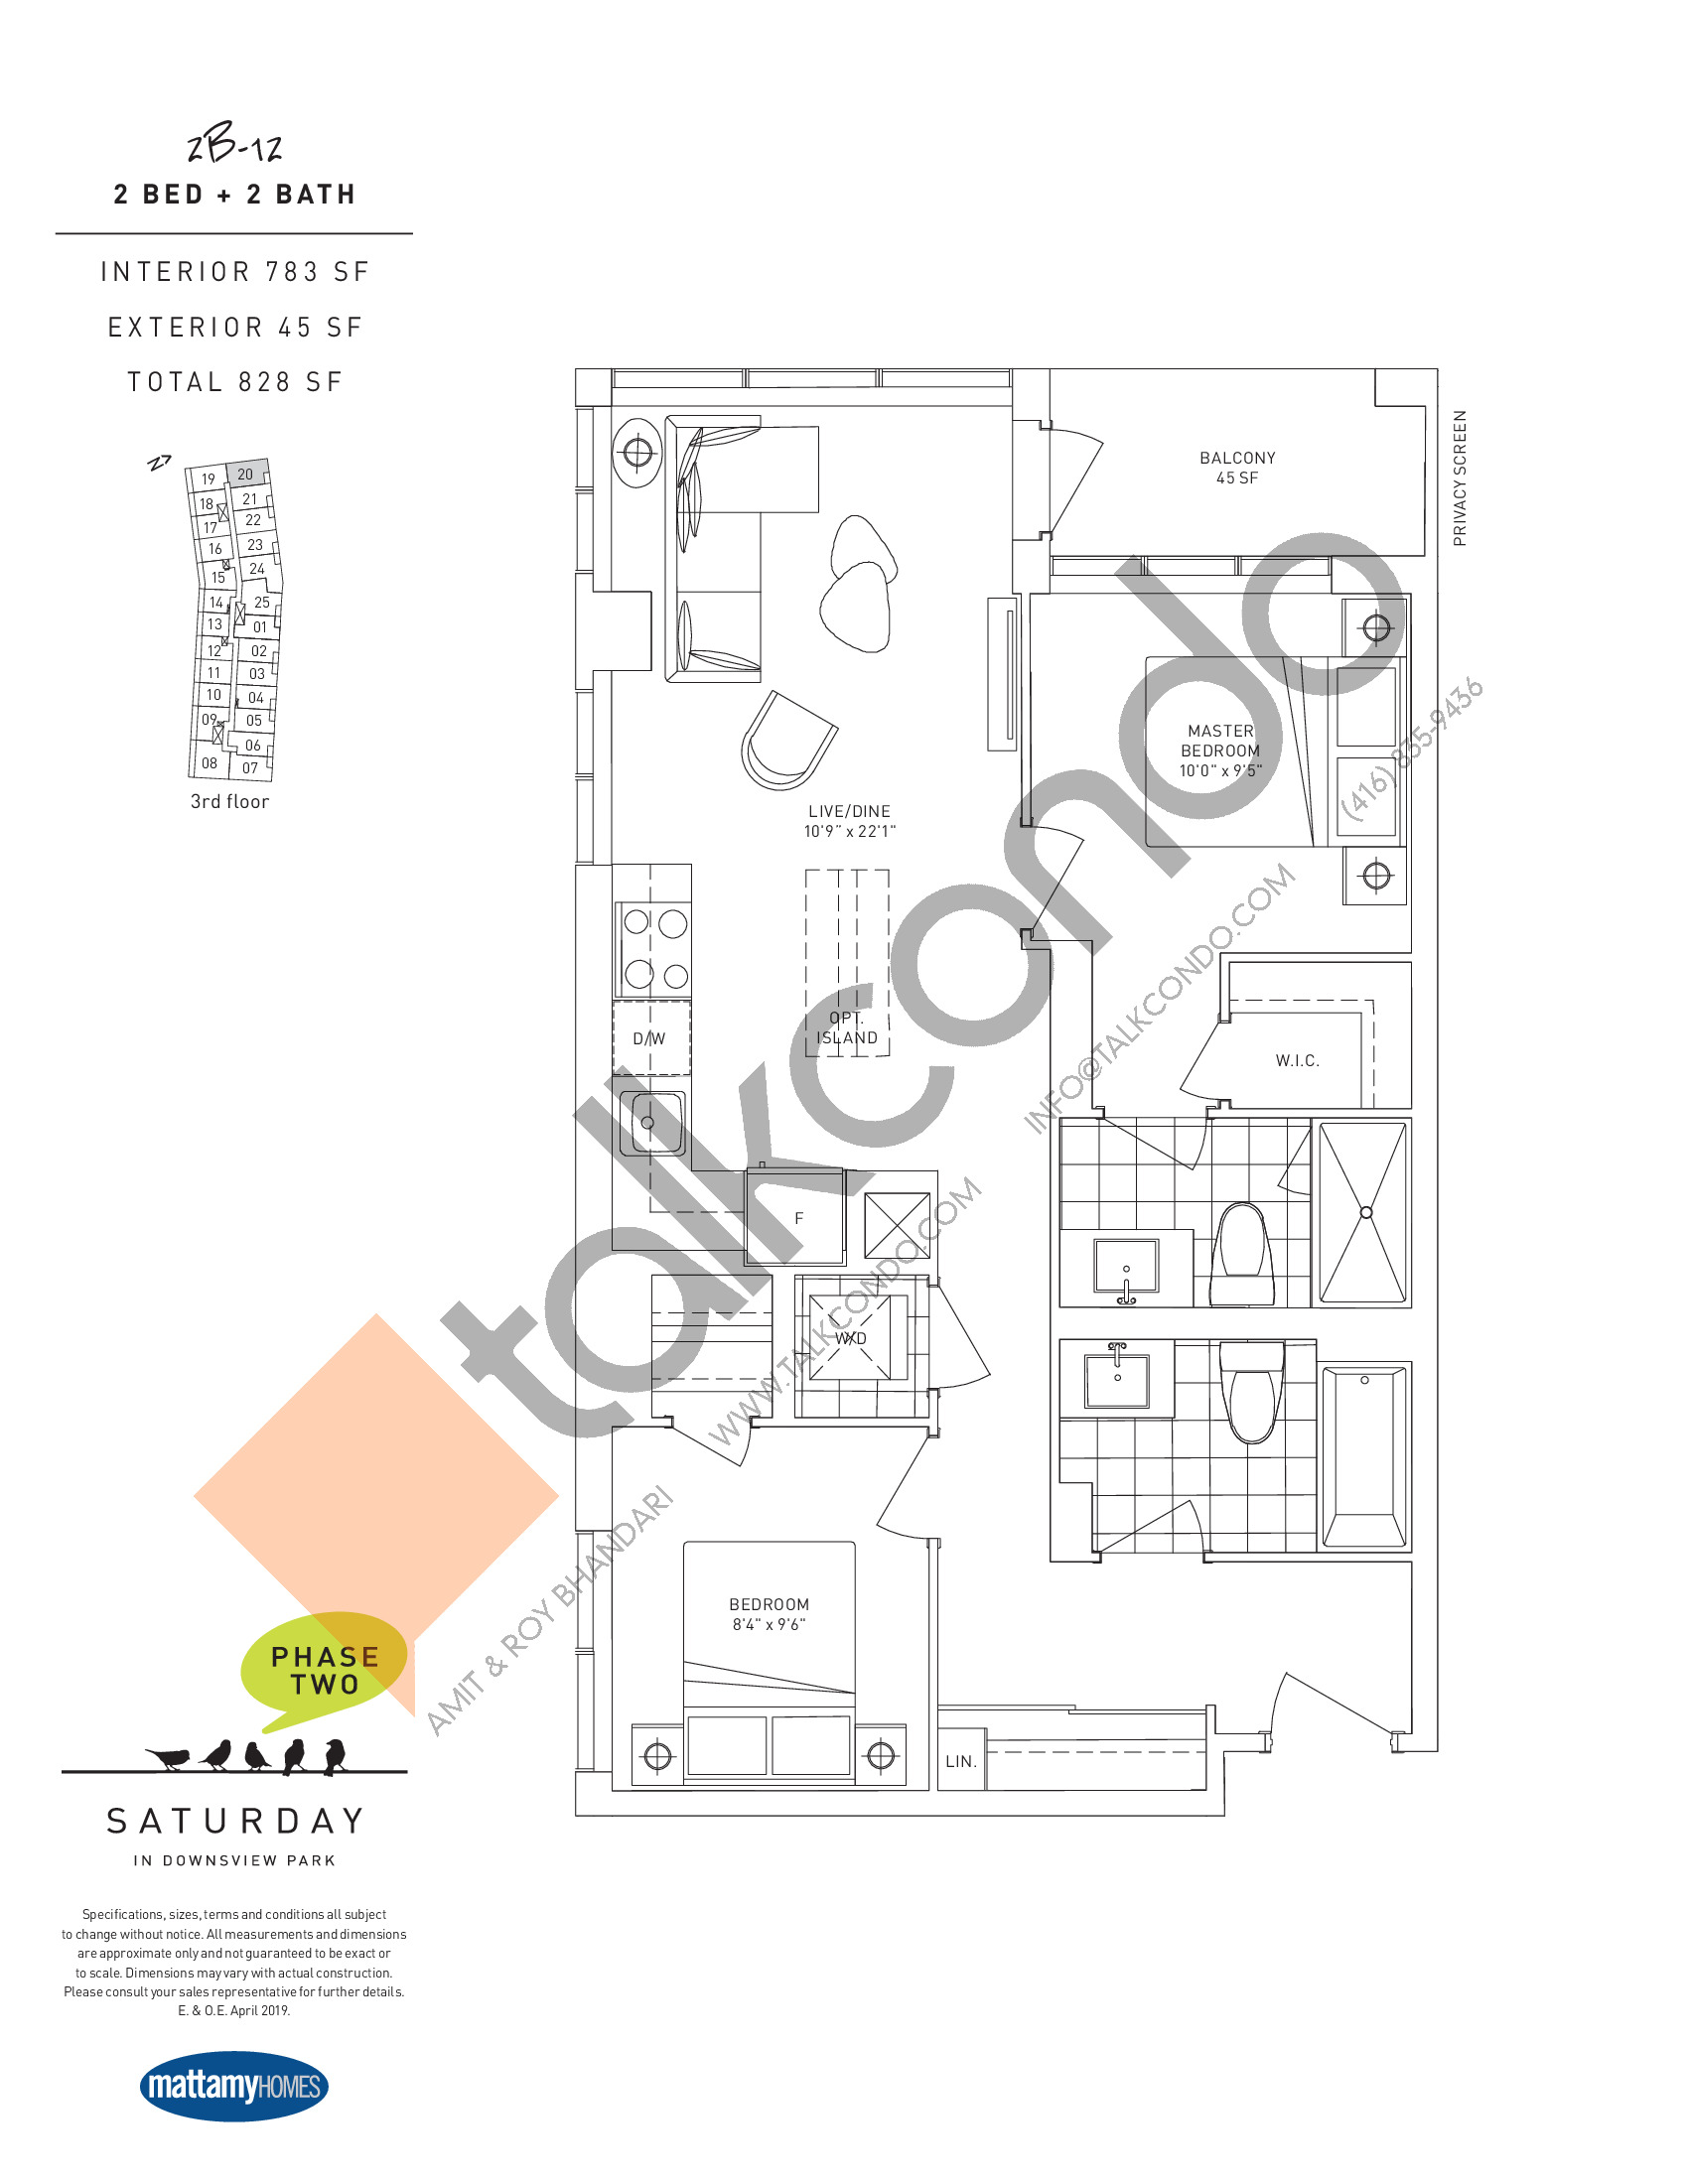 2B-12 Floor Plan at Saturday in Downsview Park Phase 2 Condos - 783 sq.ft